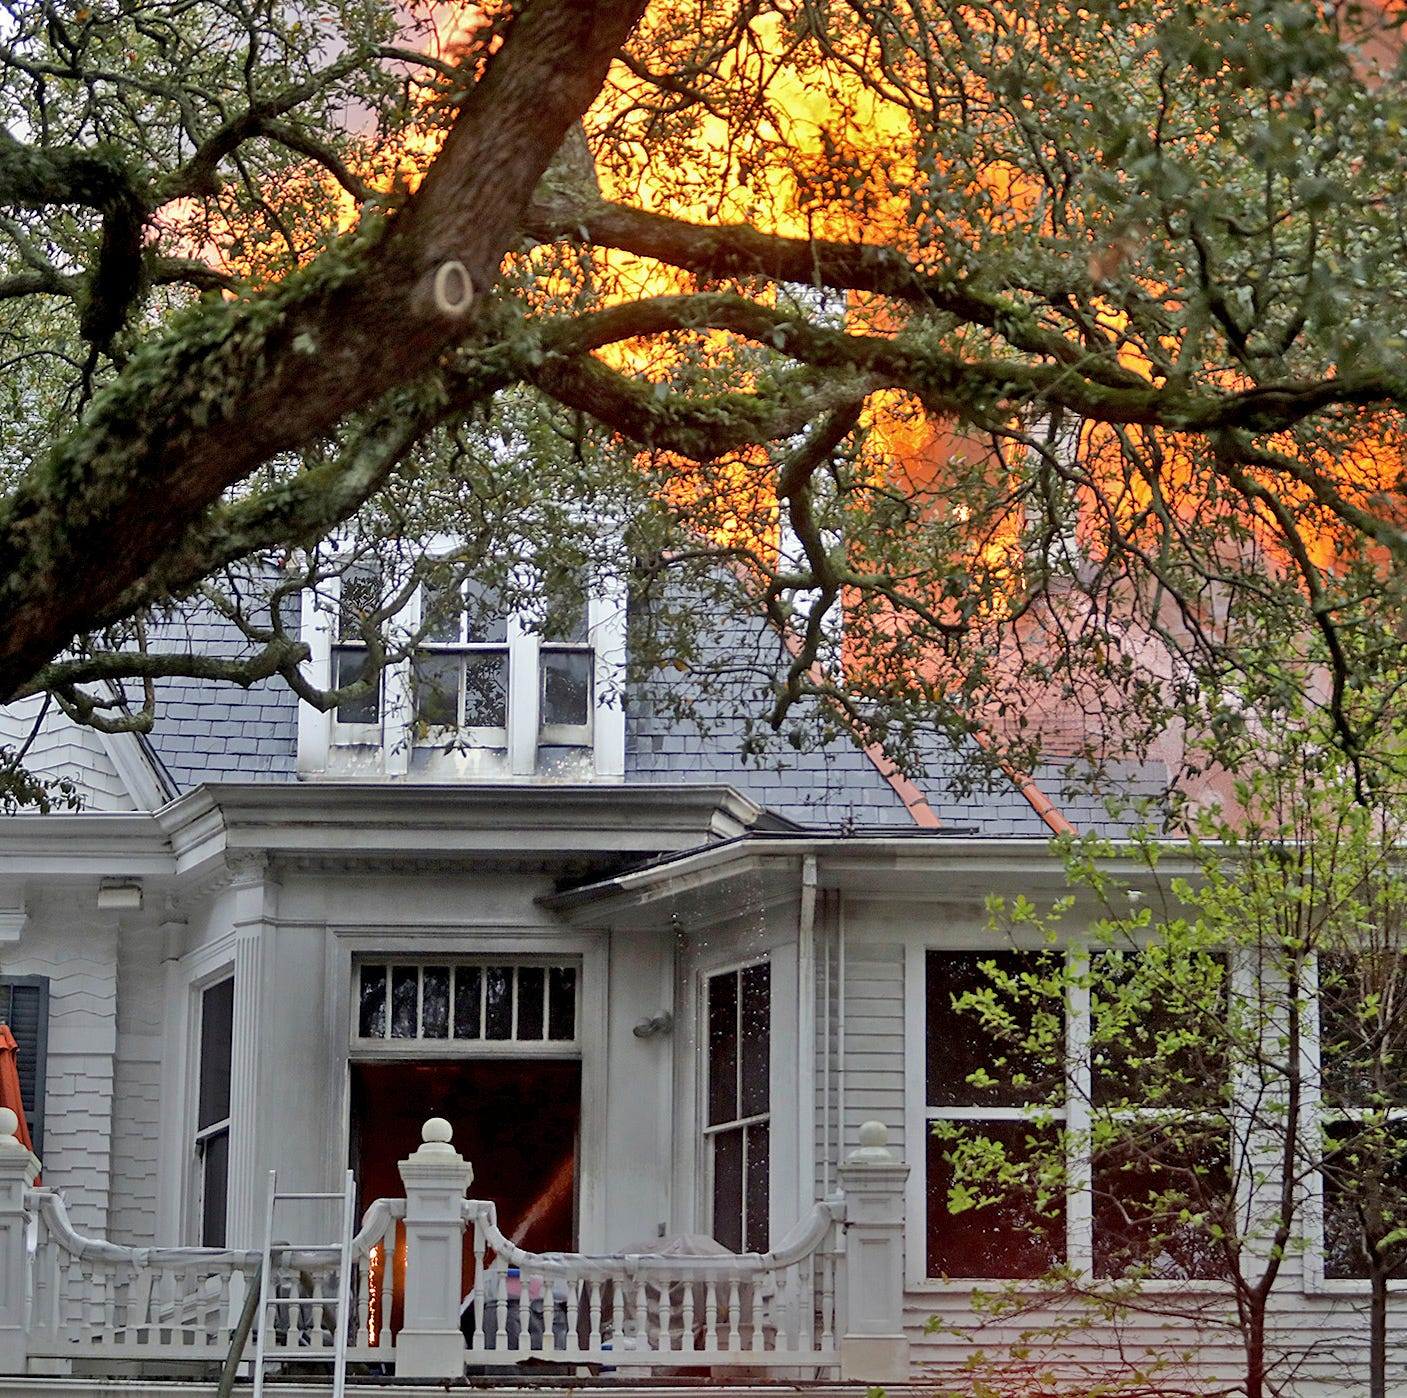 Fire engulfs 150-year-old New Orleans mansion; 3 escape